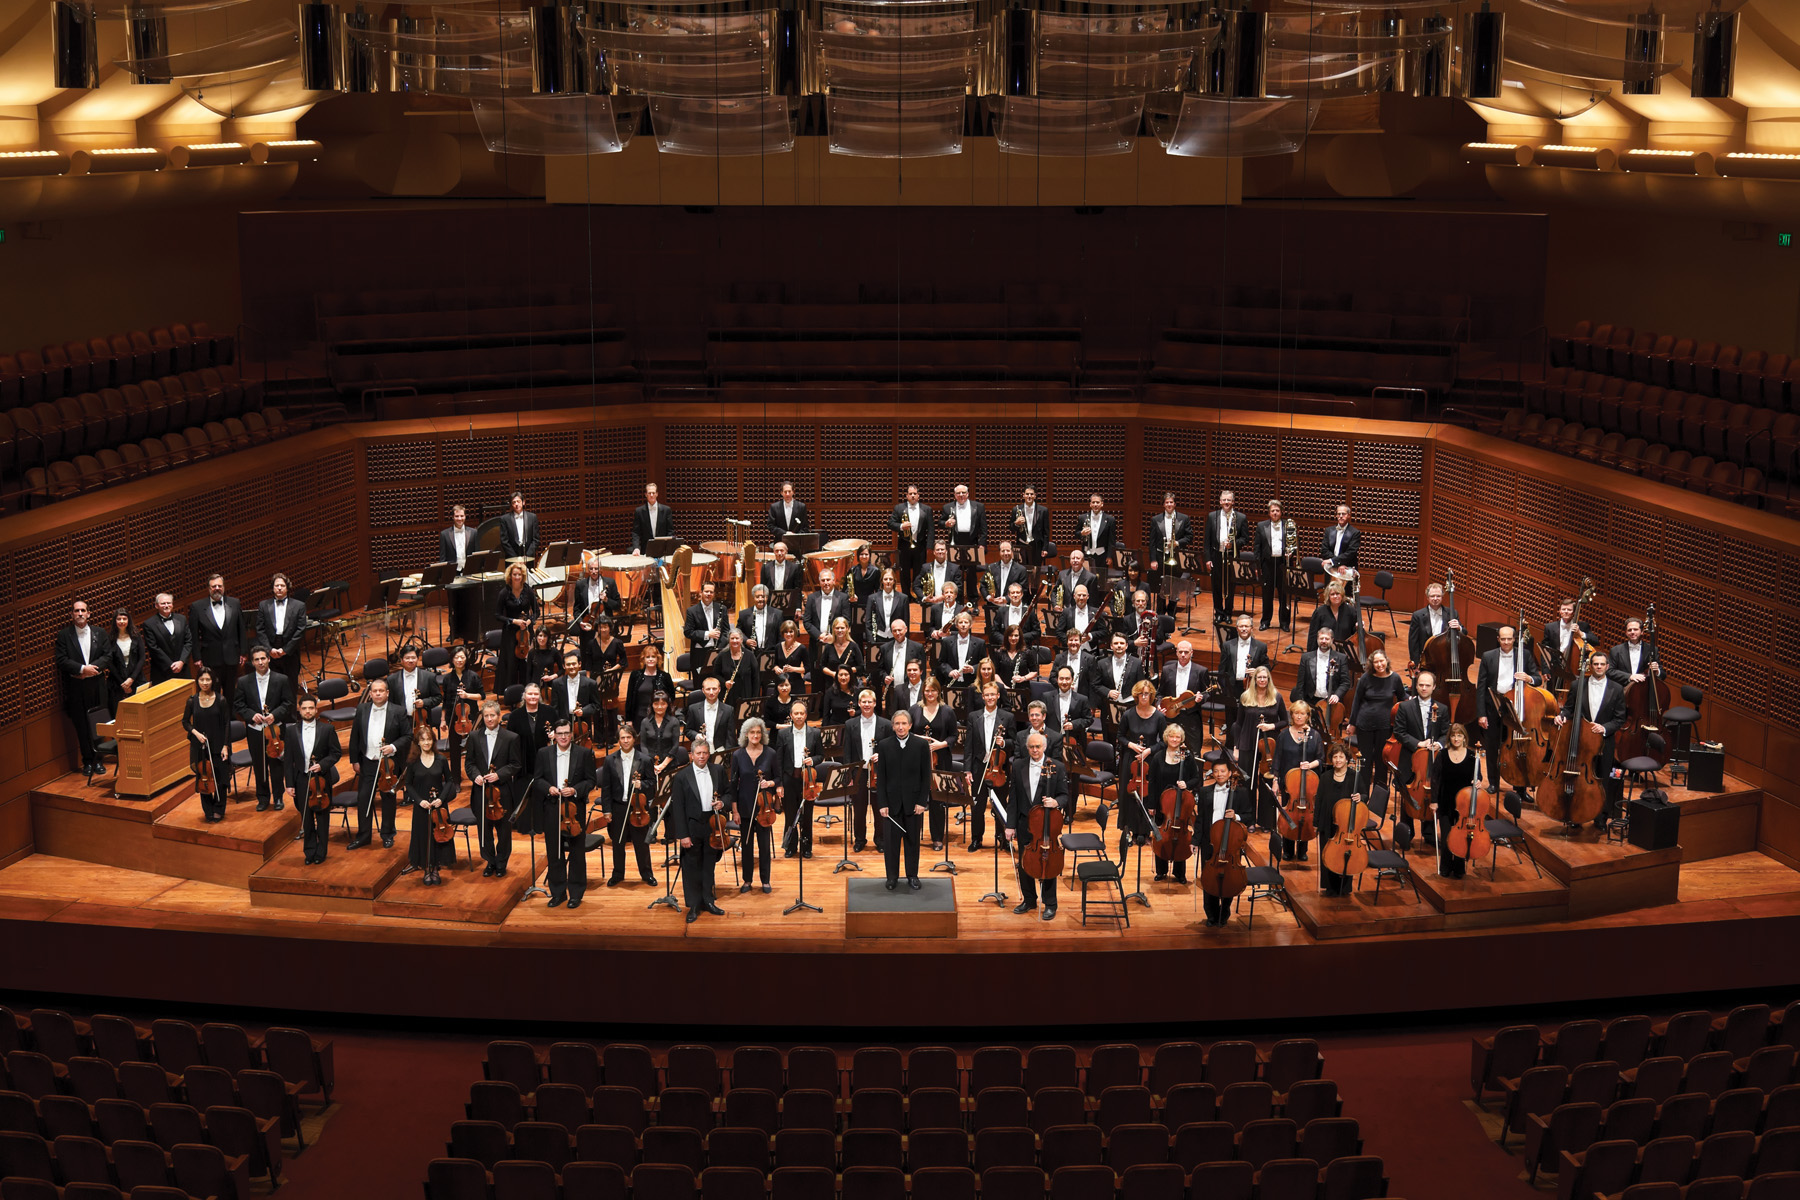 San Francisco Symphony - Van Ness Ave, San Francisco, California - Rated based on Reviews